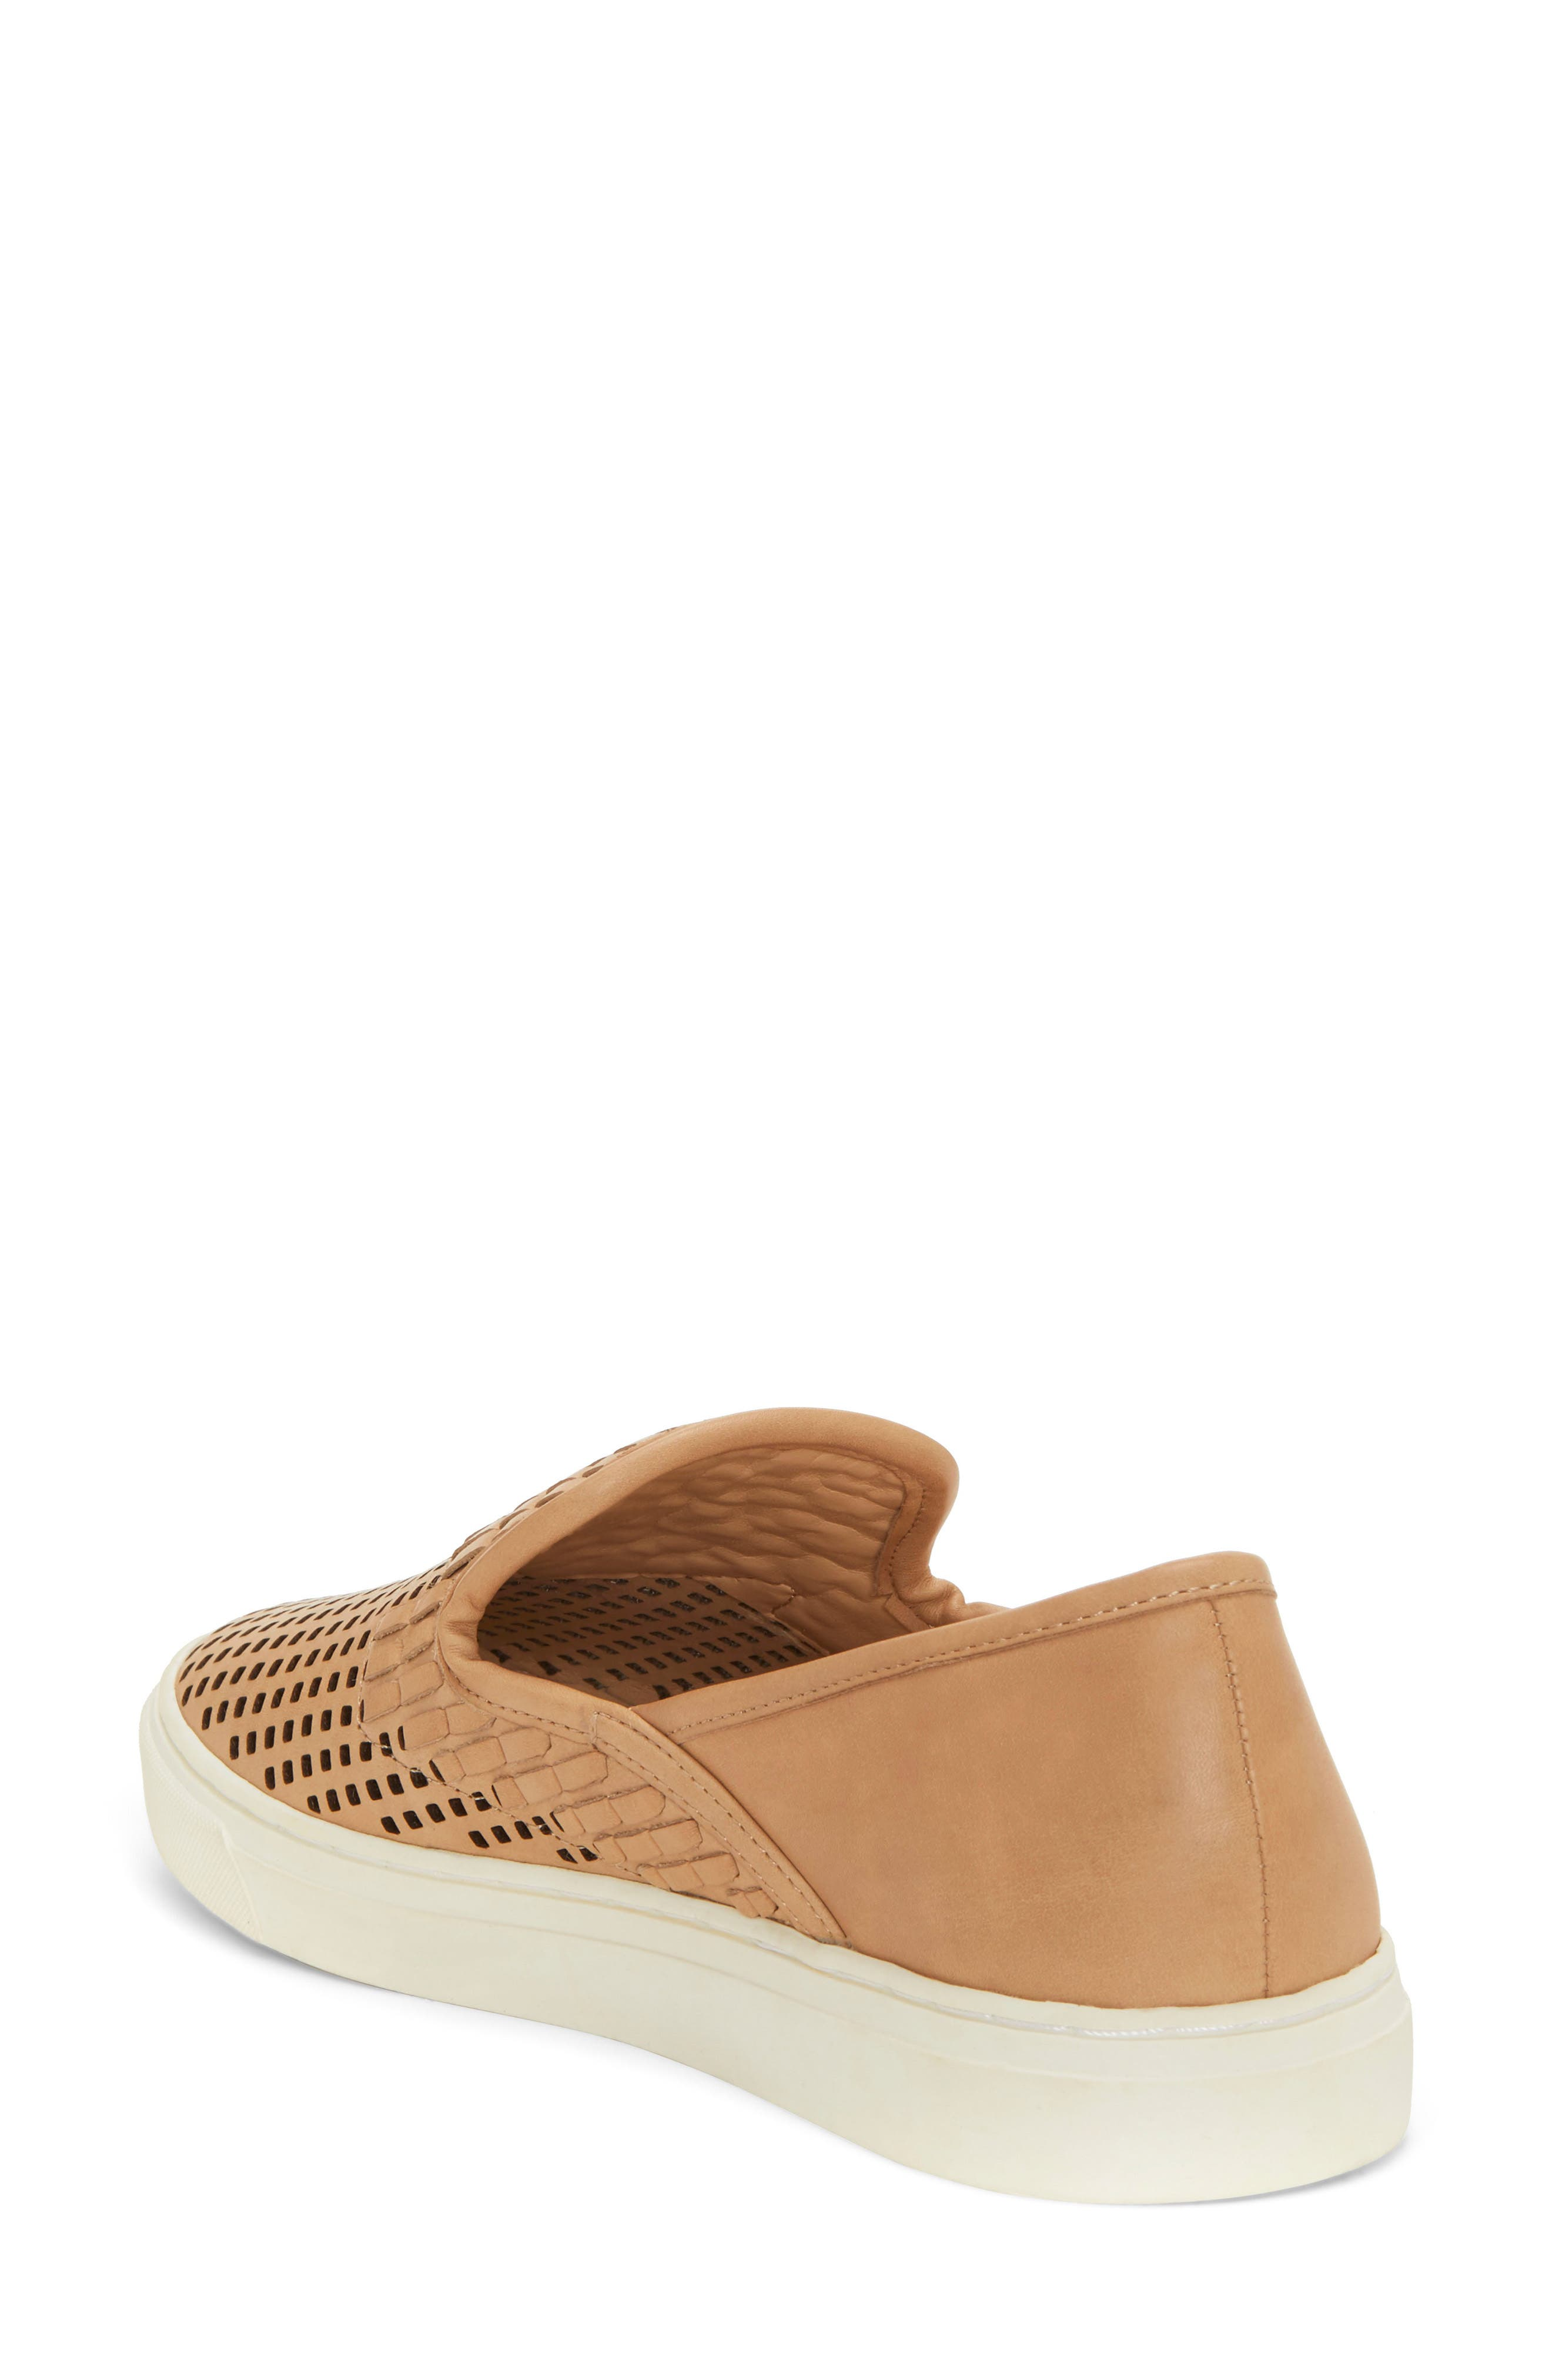 VINCE CAMUTO,                             Bristie Sneaker,                             Alternate thumbnail 2, color,                             NATURAL LEATHER